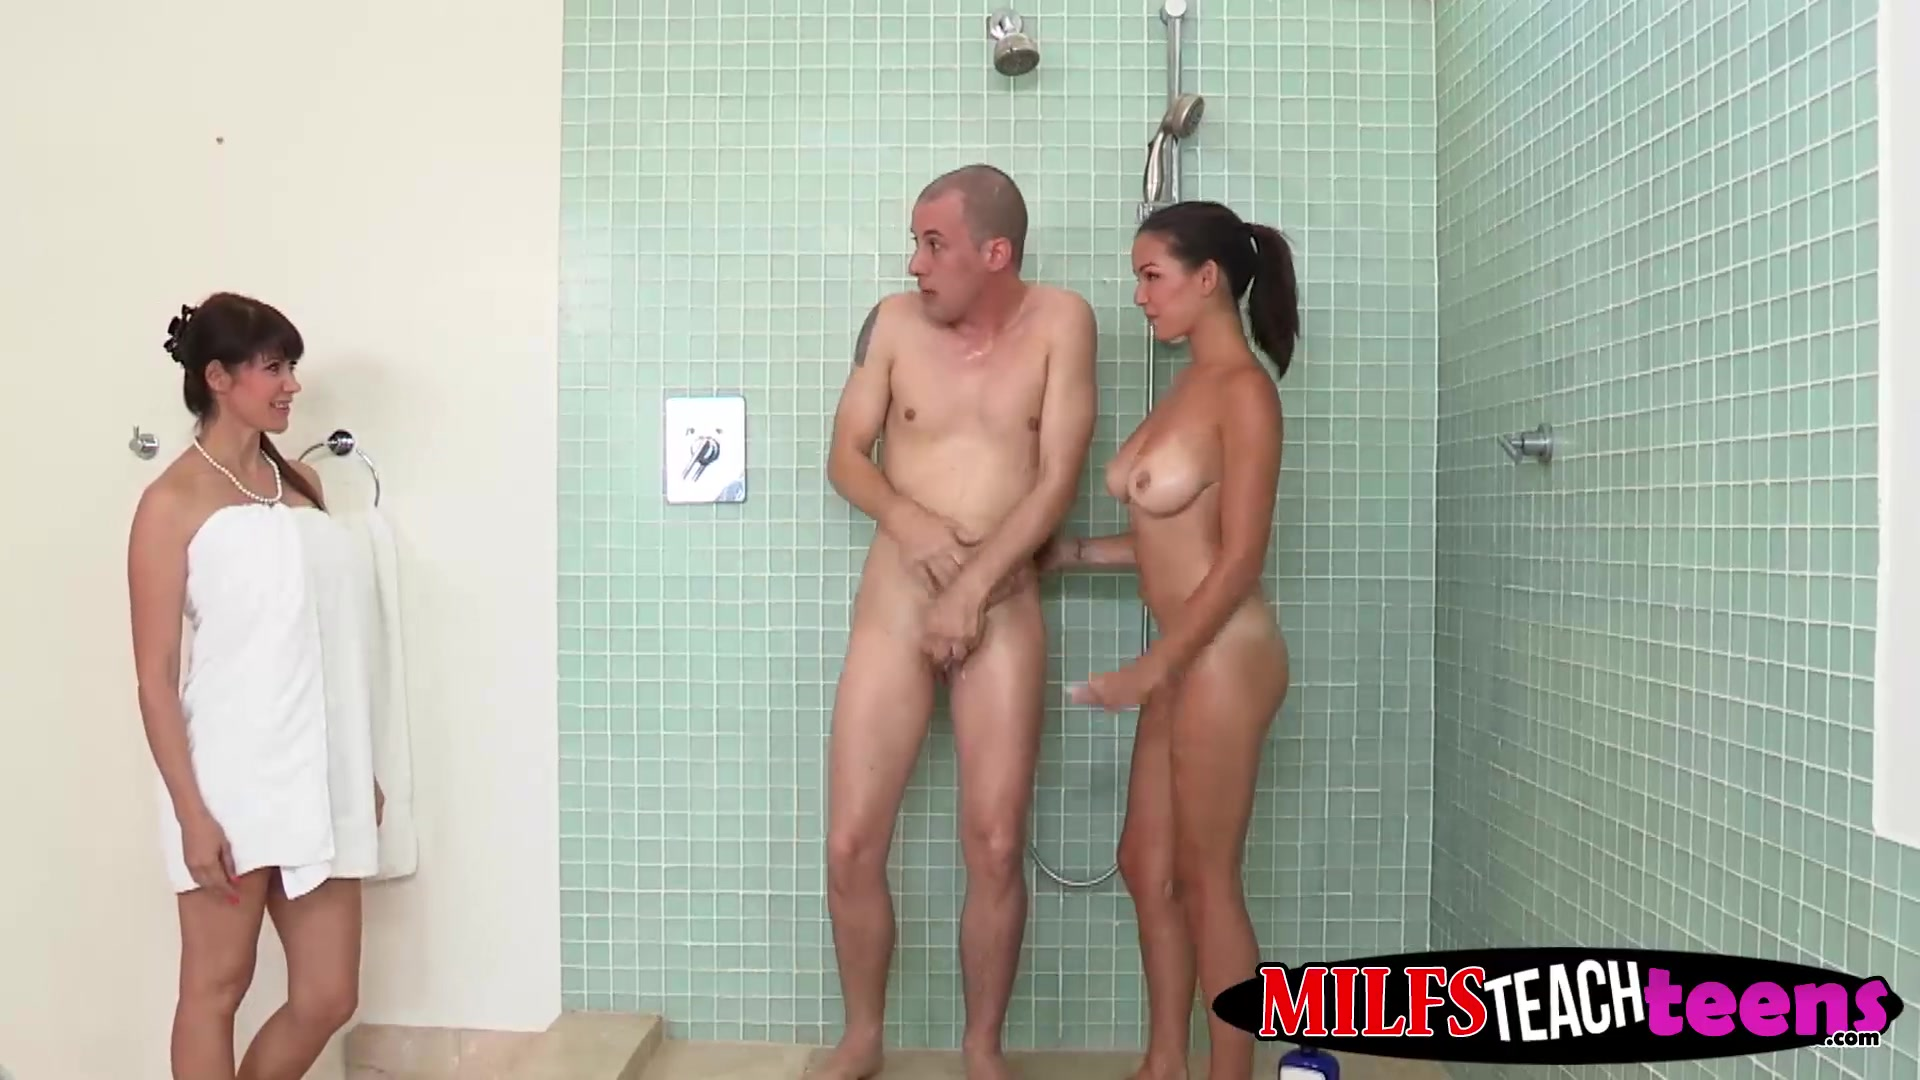 Beauty brunettes Shae and Eva get some action in the shower